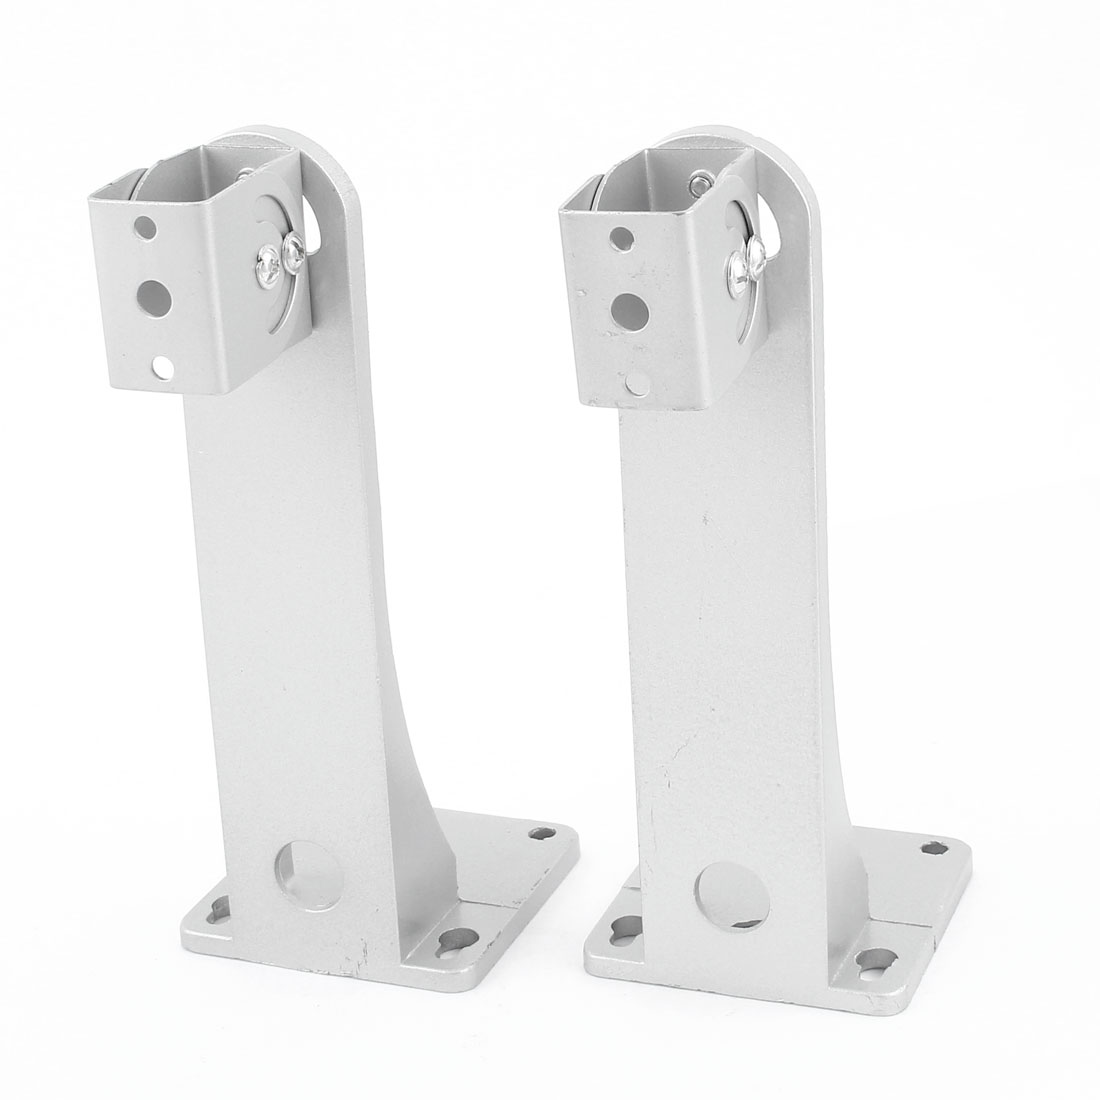 2 Pcs Aluminum Alloy Ceiling Mount Bracket Stand for CCTV Security Camera